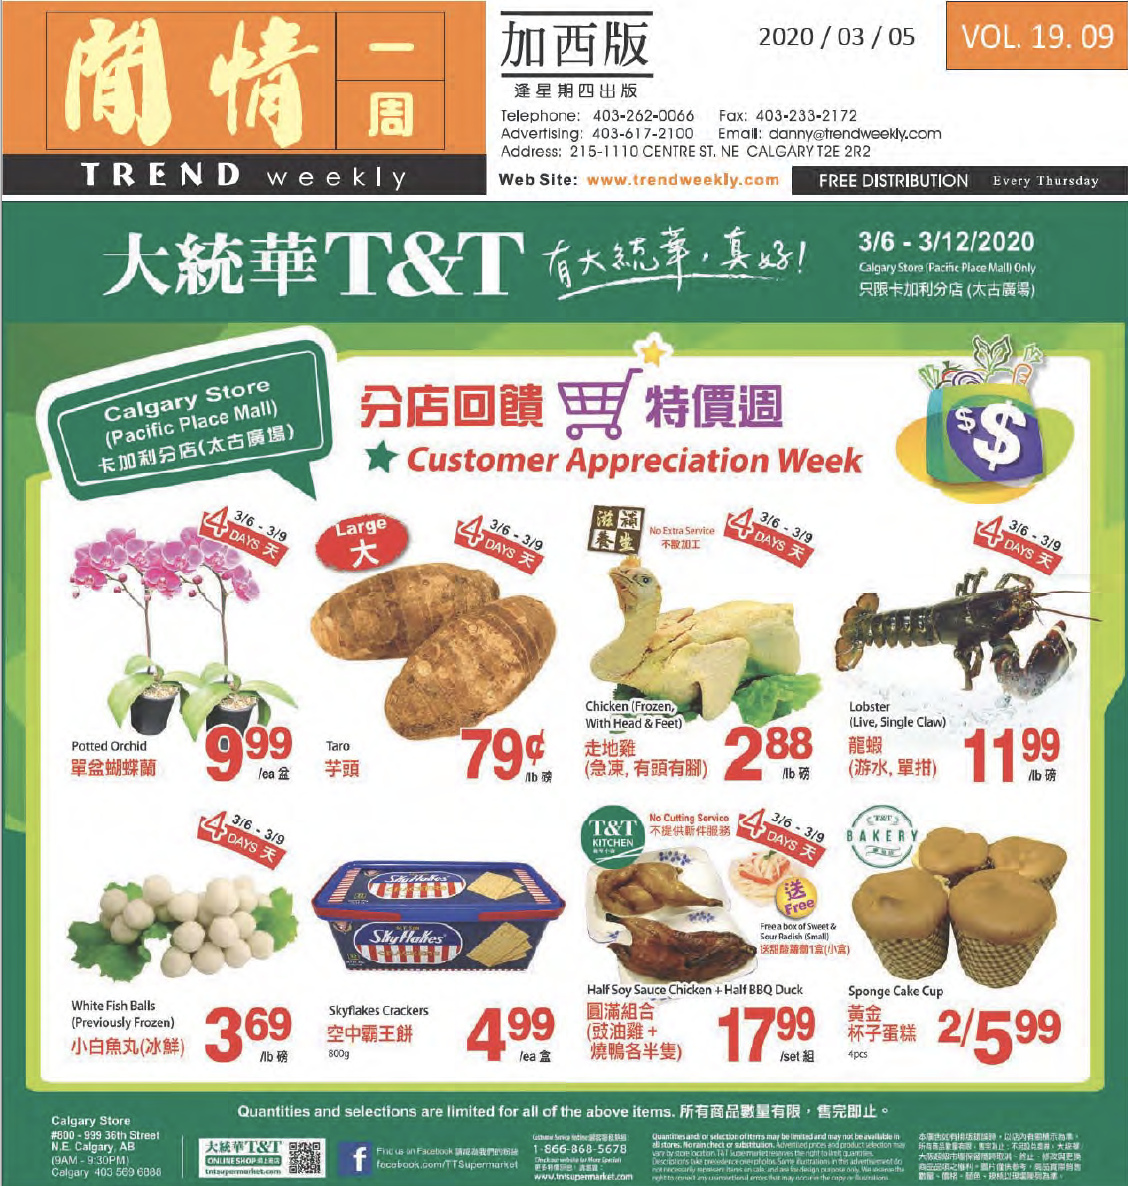 March 05 Trend Weekly Issue